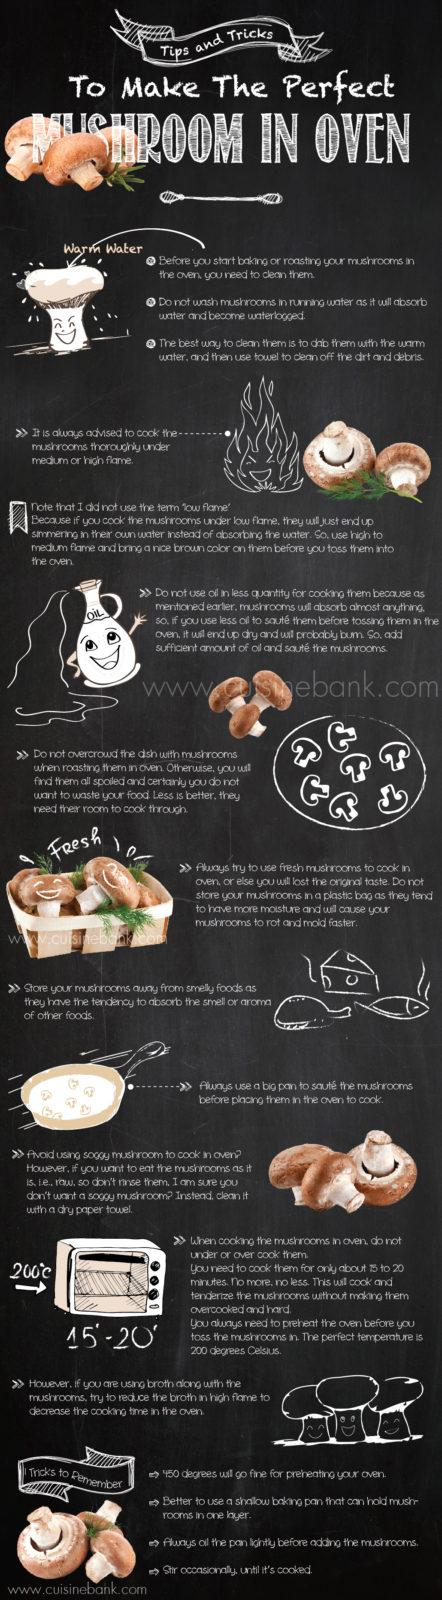 Tips and Tricks to Make the Perfect Mushroom in Oven banner